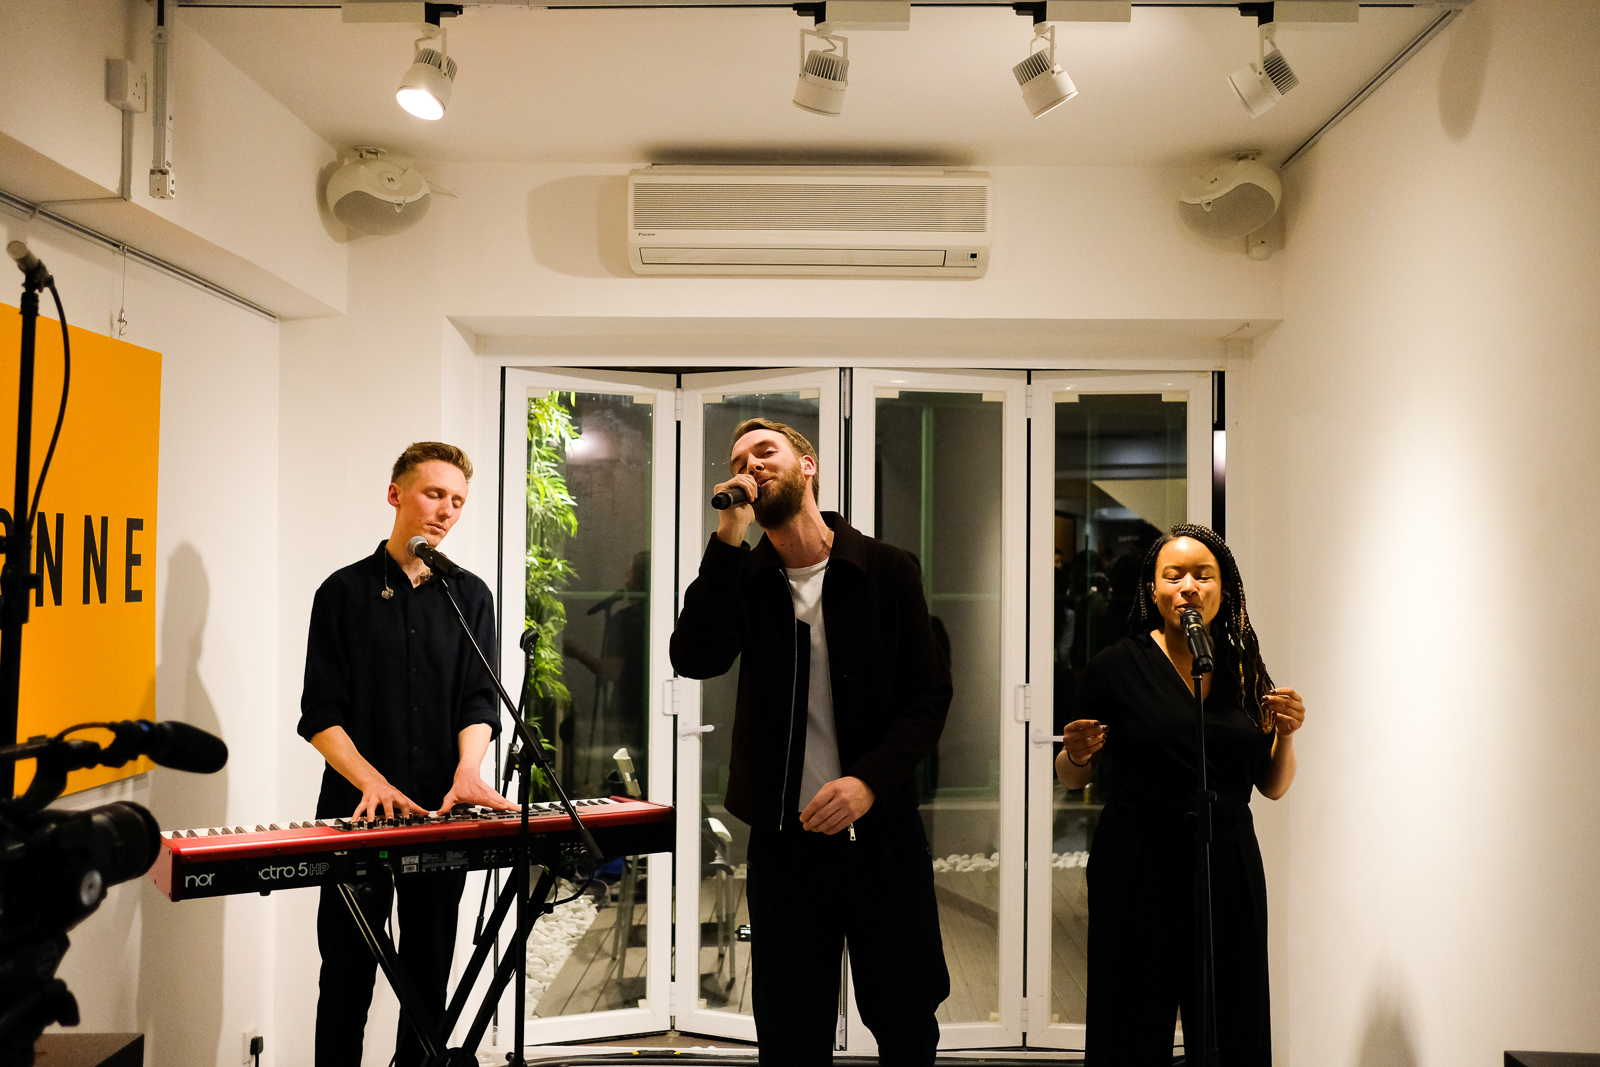 Honne Private Show in Hong Kong